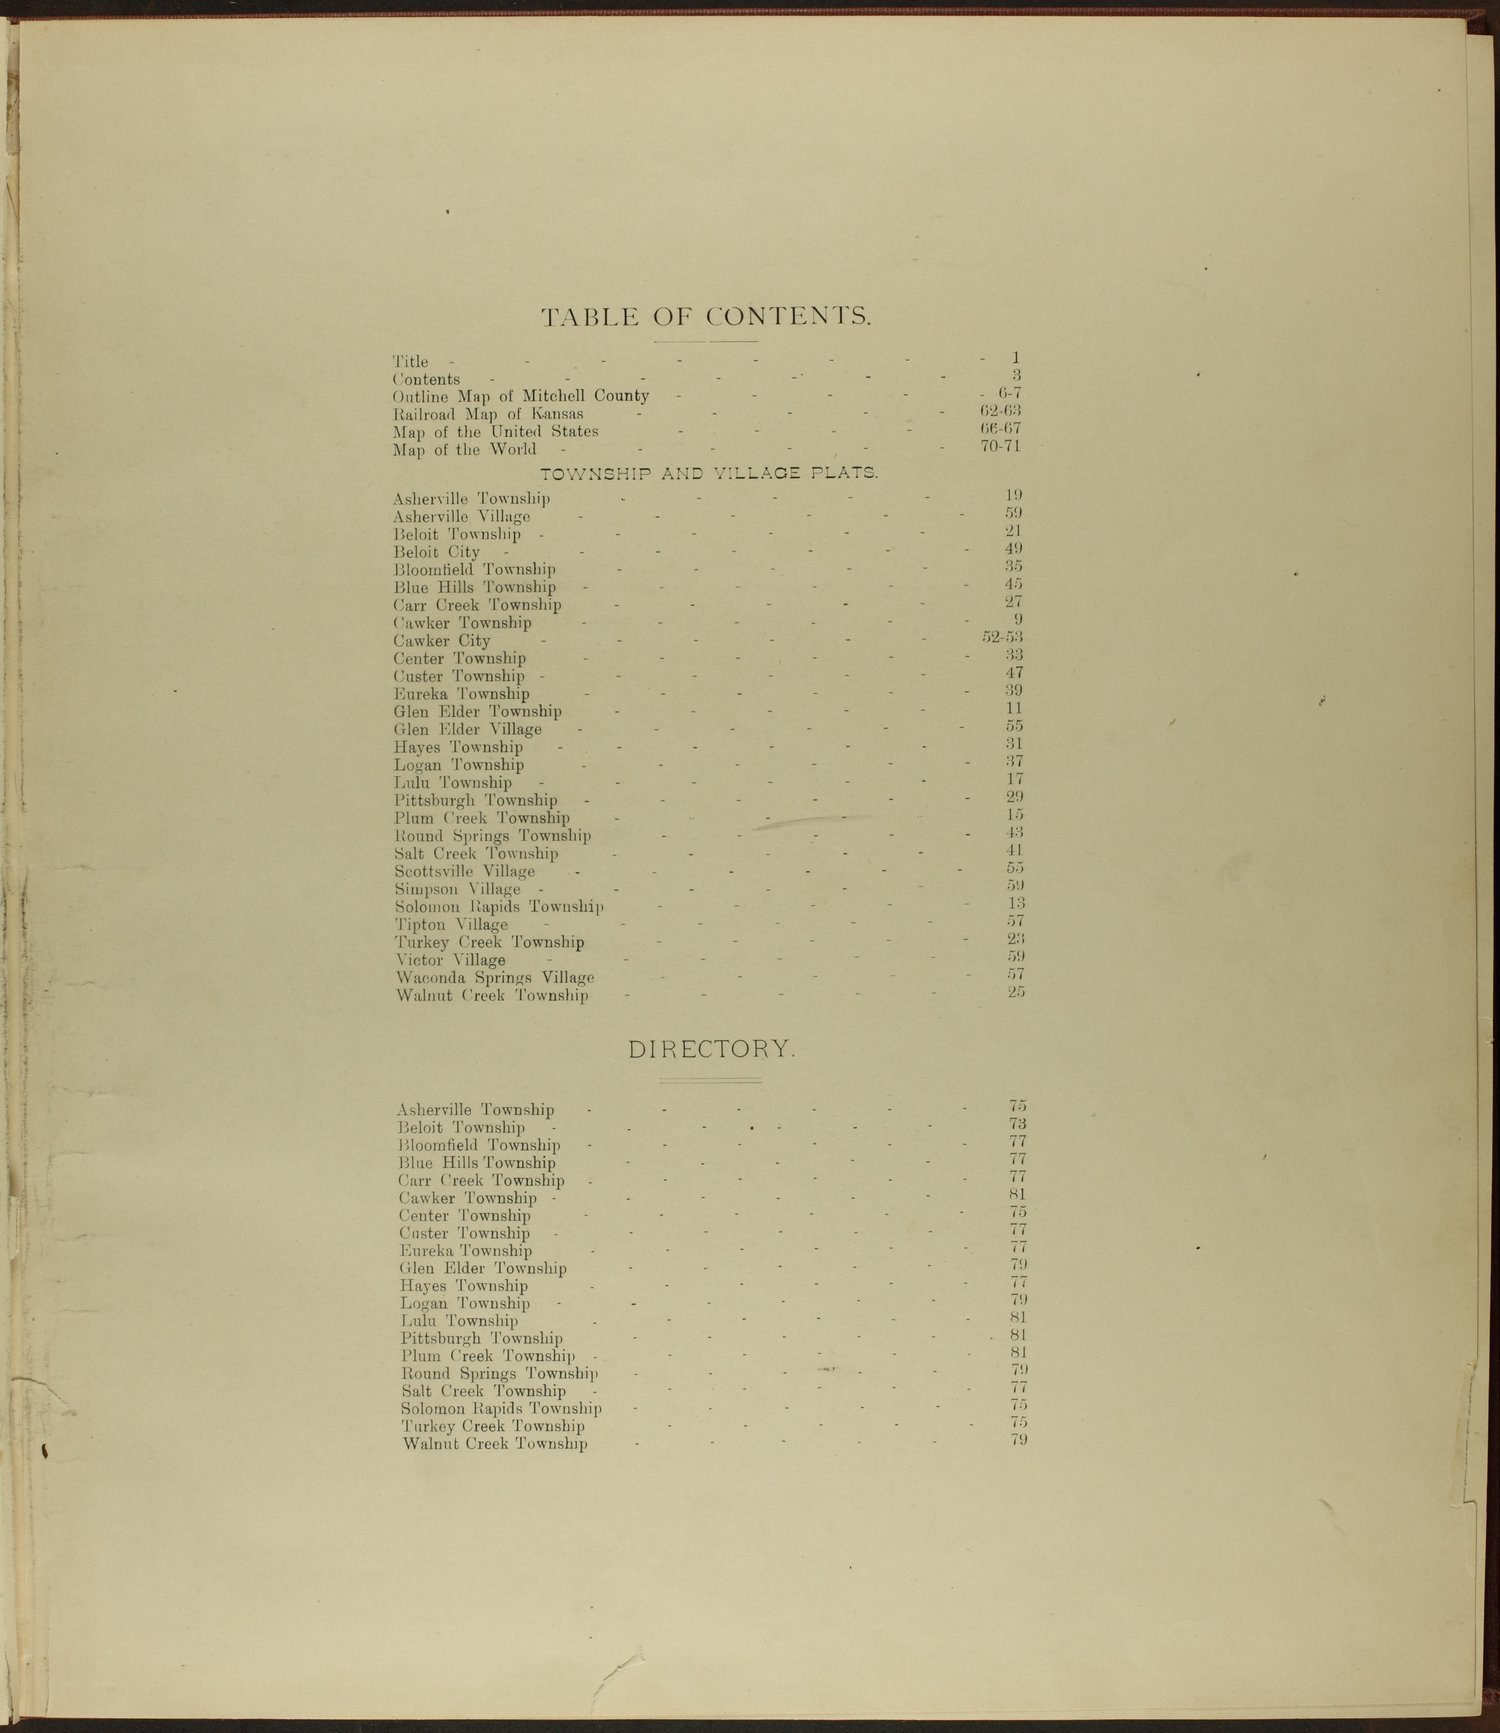 Atlas of Mitchell County, Kansas - Table of Contents